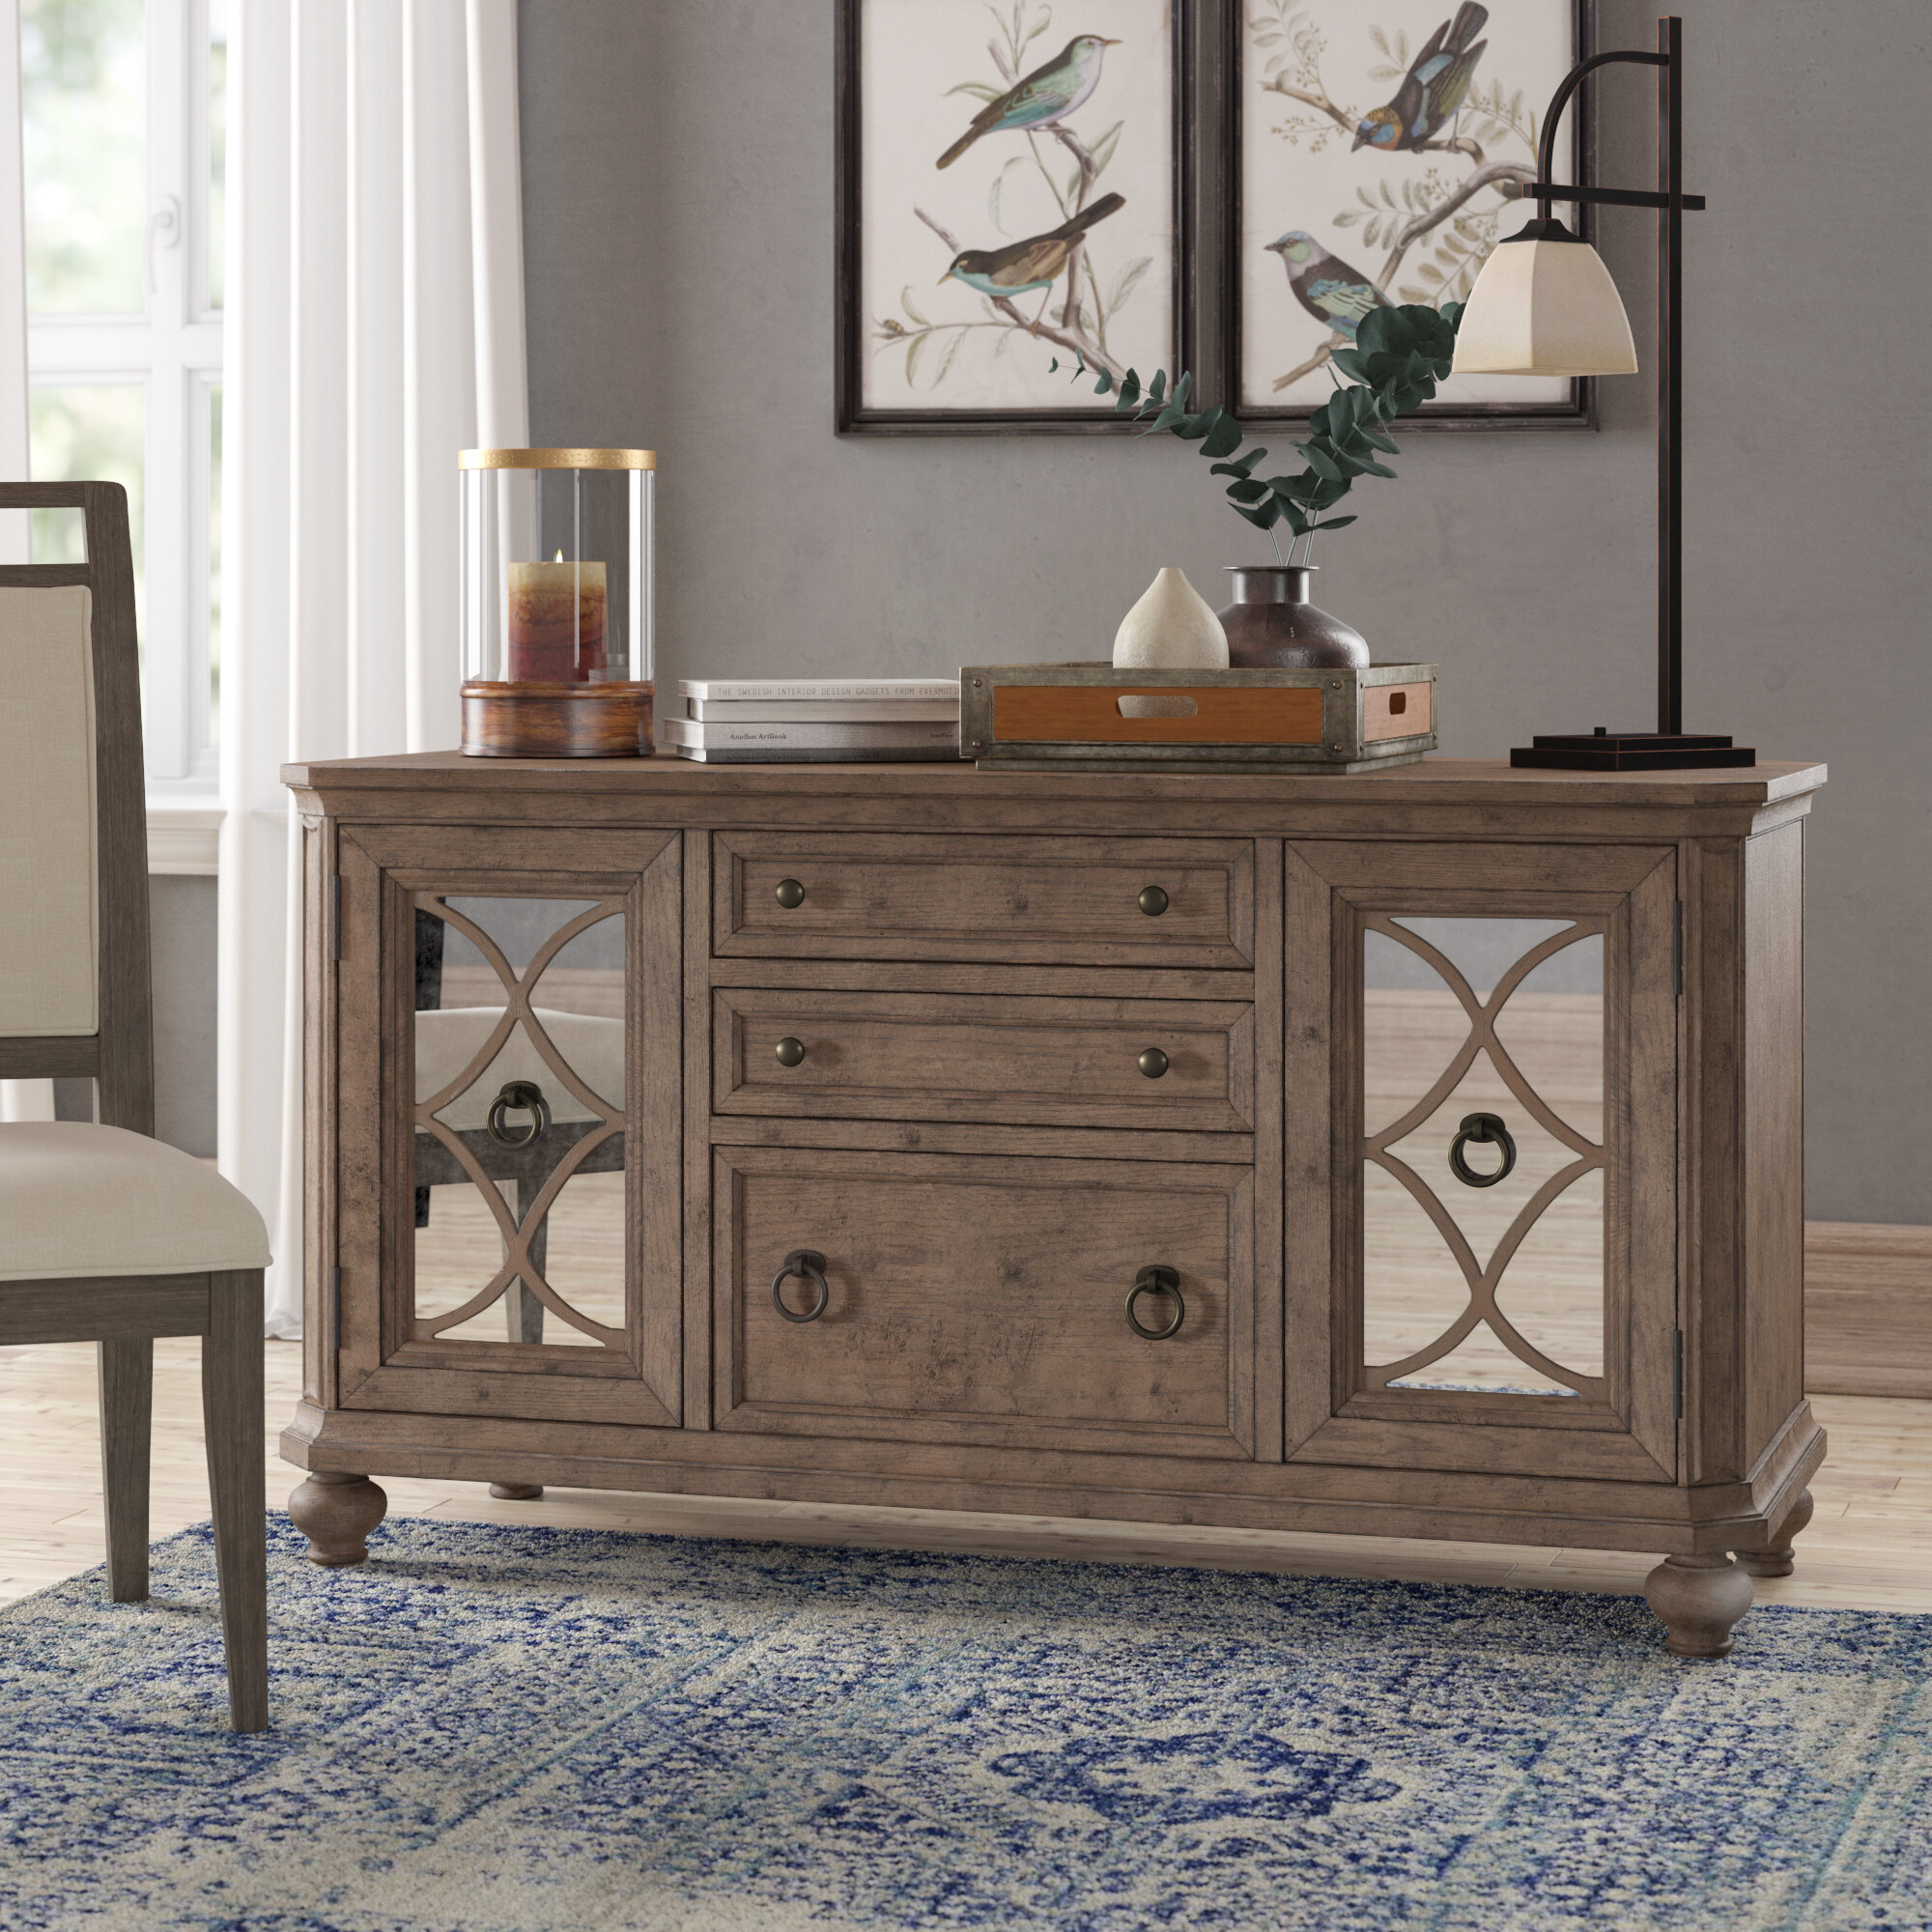 Etonnant Birch Lane™ Heritage Sibylla Credenza Desk U0026 Reviews | Wayfair